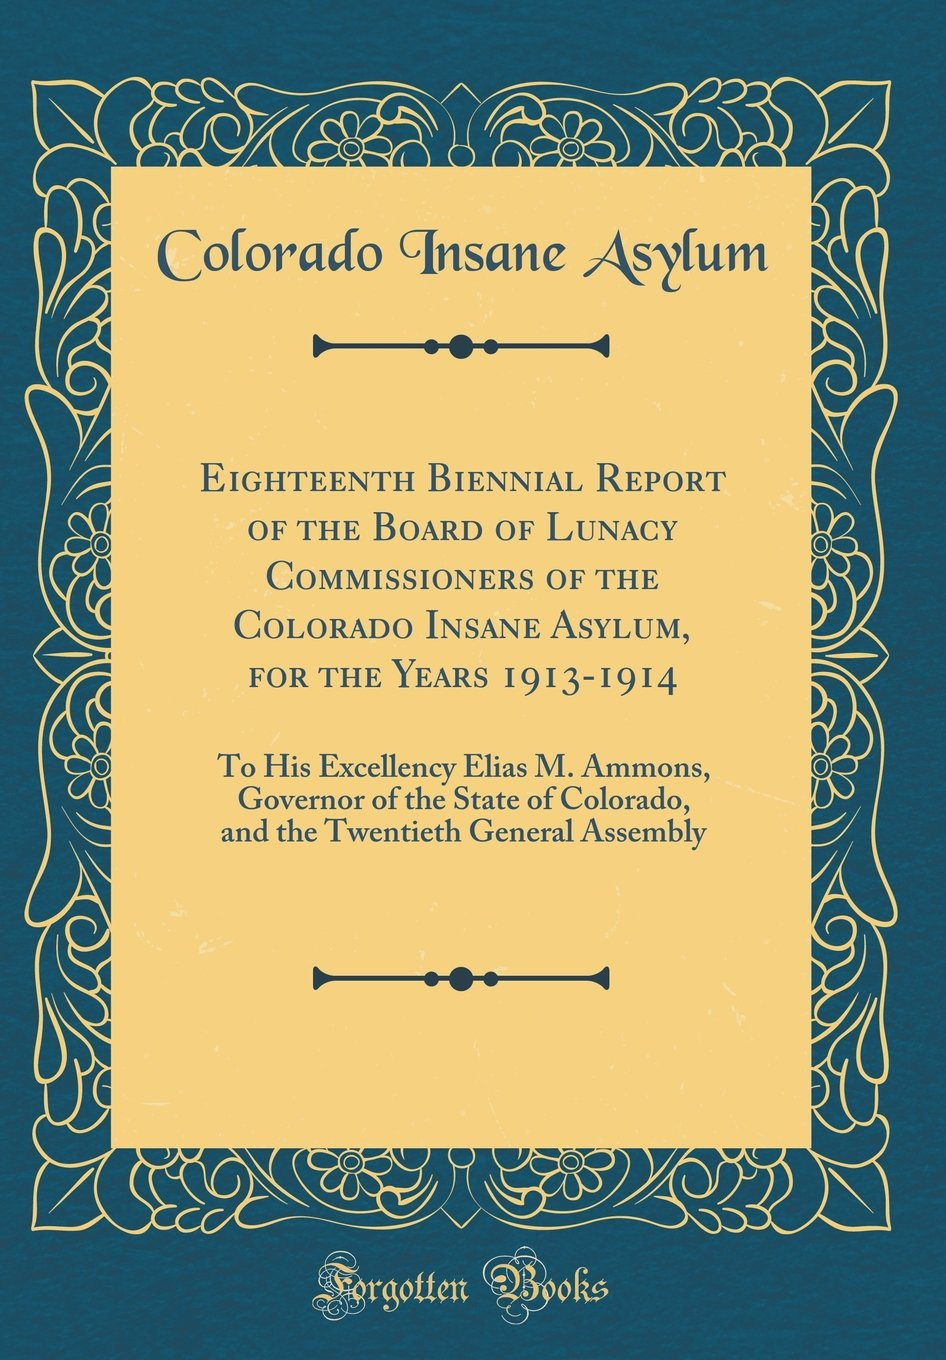 Eighteenth Biennial Report of the Board of Lunacy Commissioners of the Colorado Insane Asylum, for the Years 1913-1914: To His Excellency Elias M. ... Twentieth General Assembly (Classic Reprint) PDF